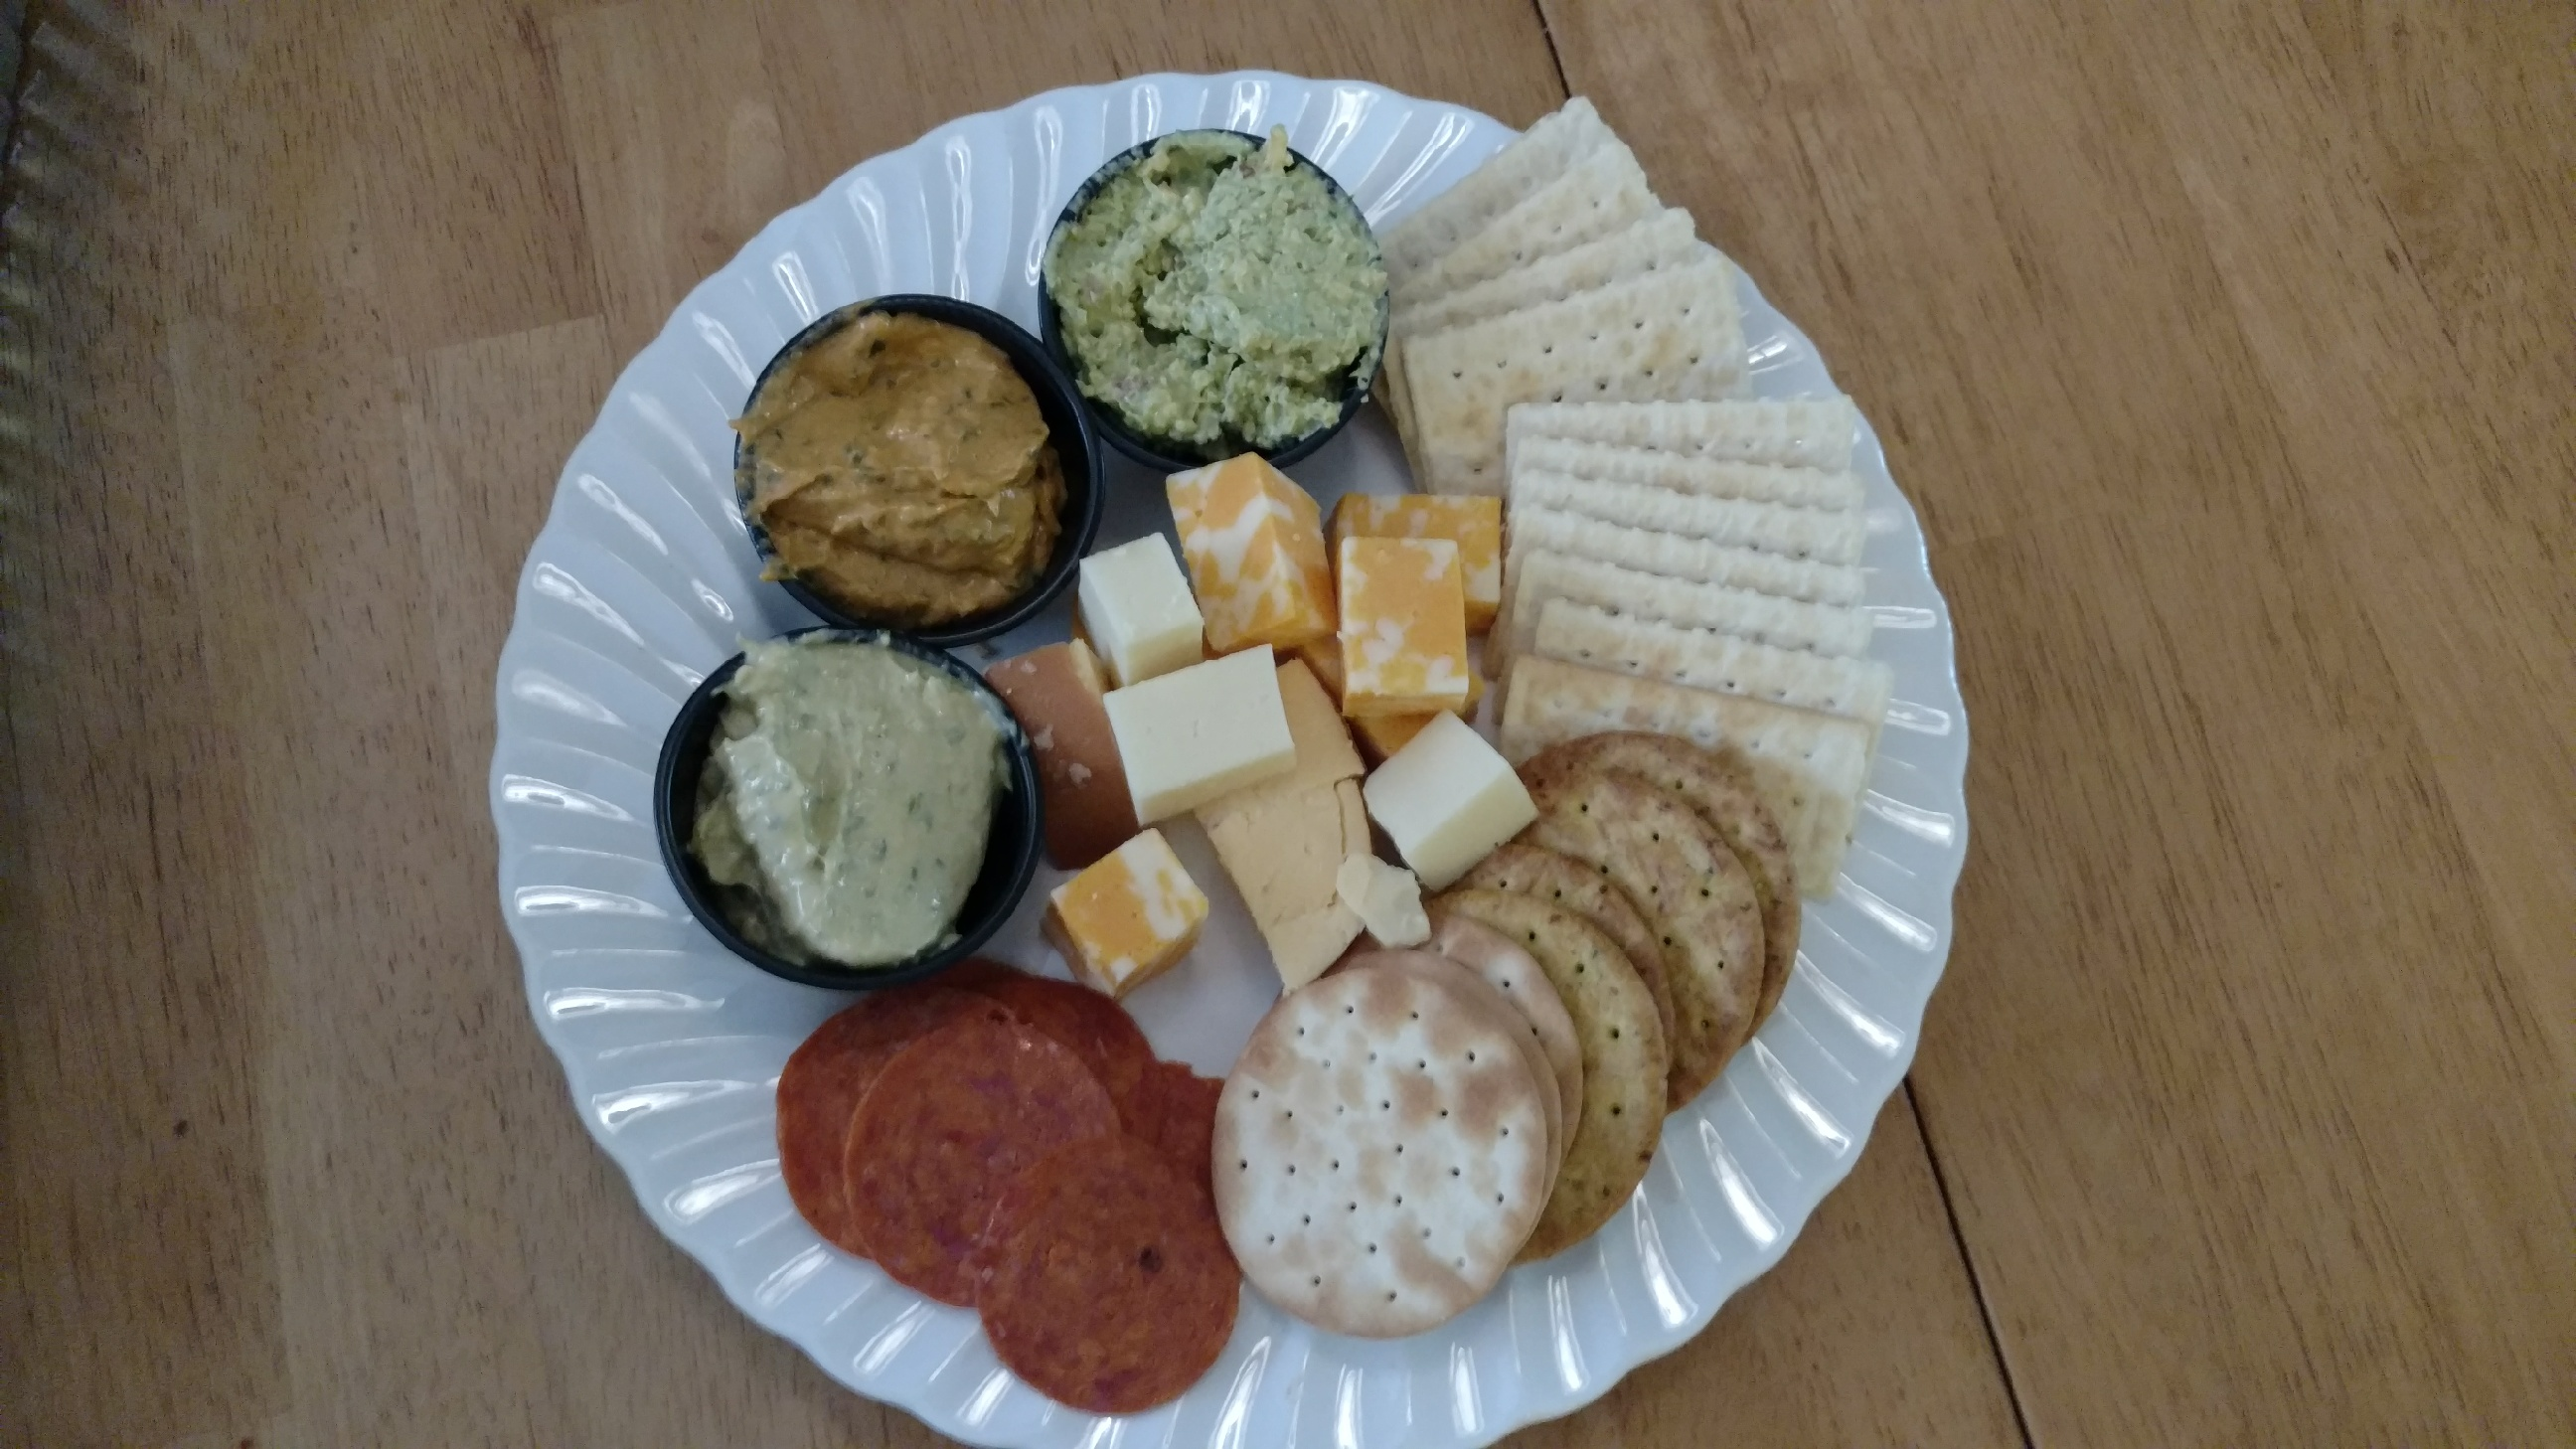 Three different leek dips with cheese and crackers for $8.00.